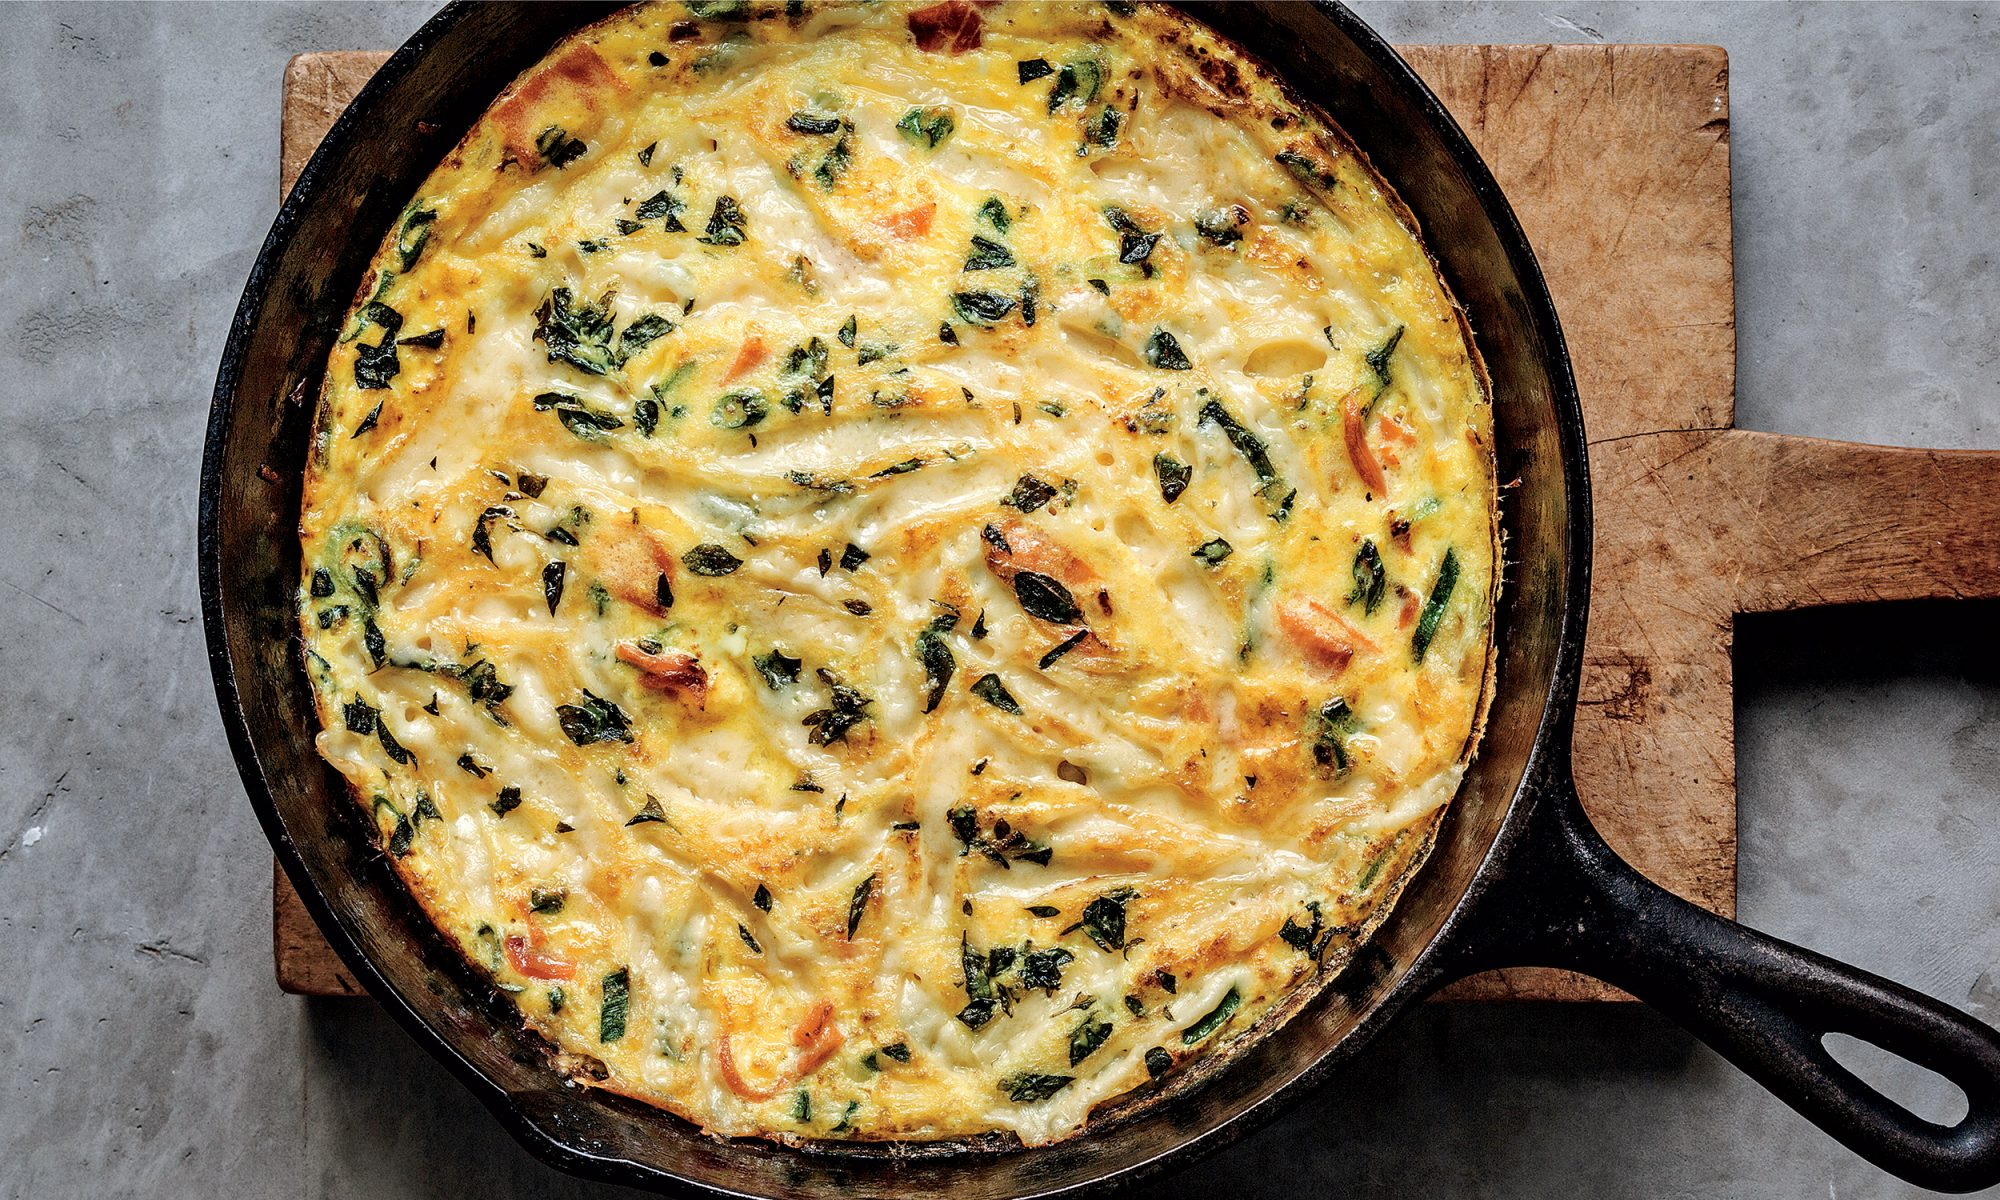 EC: An Easy Salmon Frittata You Can Make in 15 Minutes